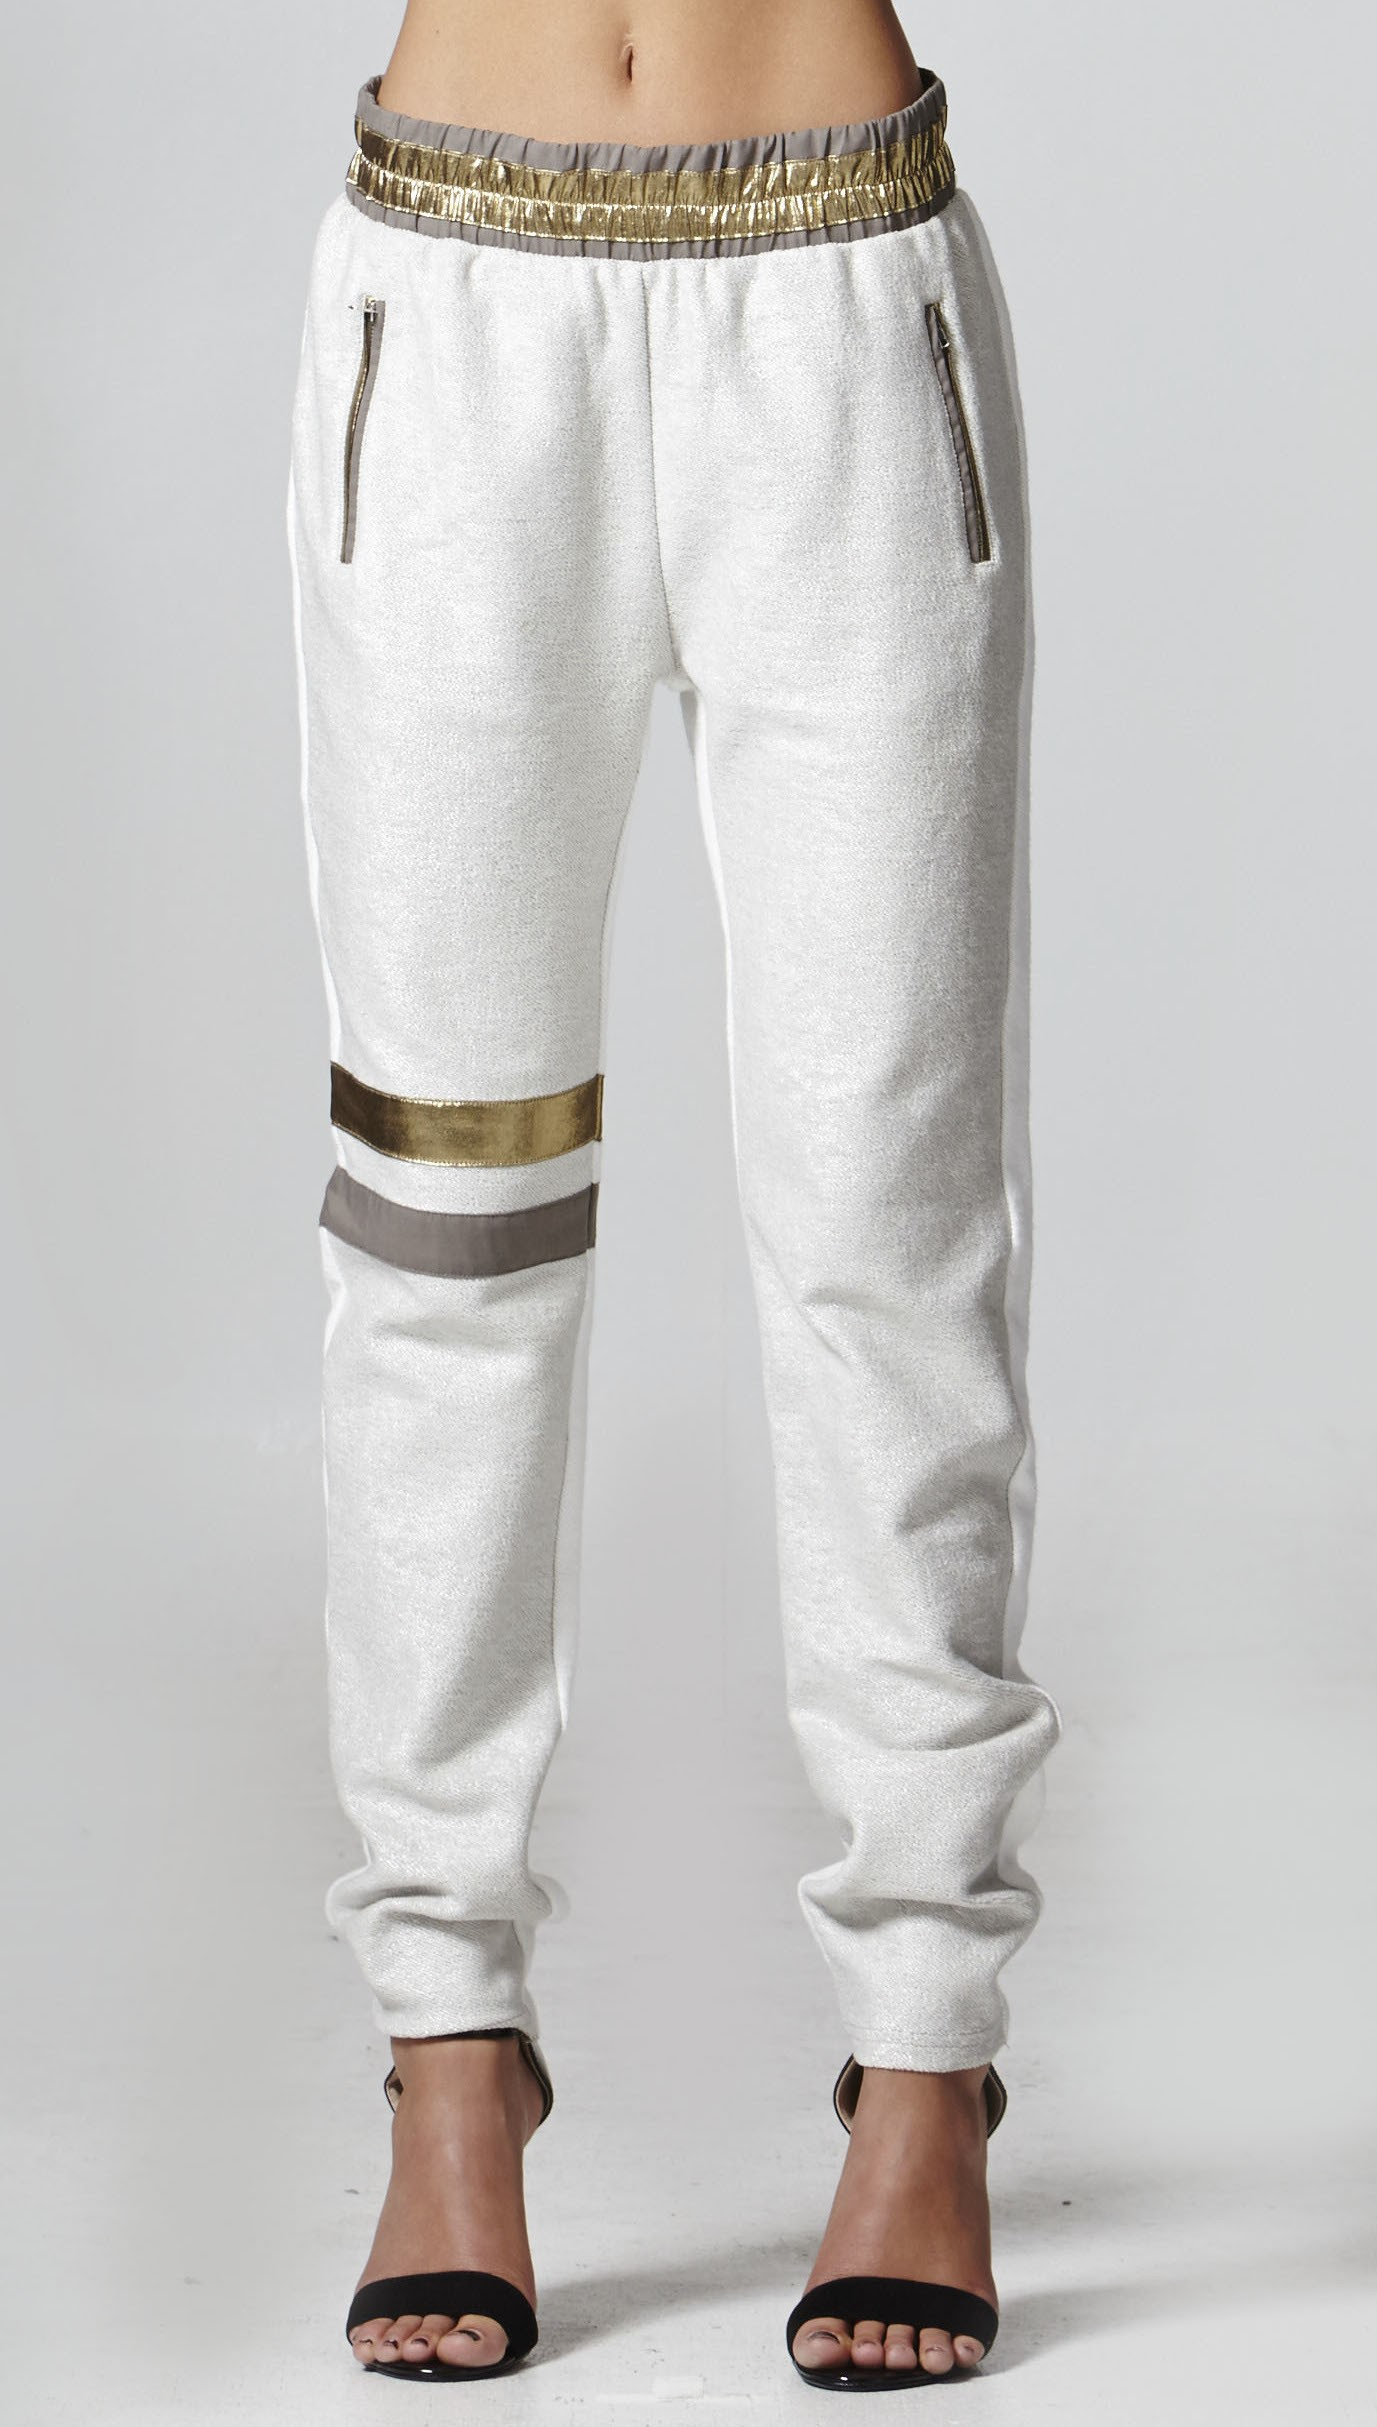 Game On Sweatpants - #Sporty